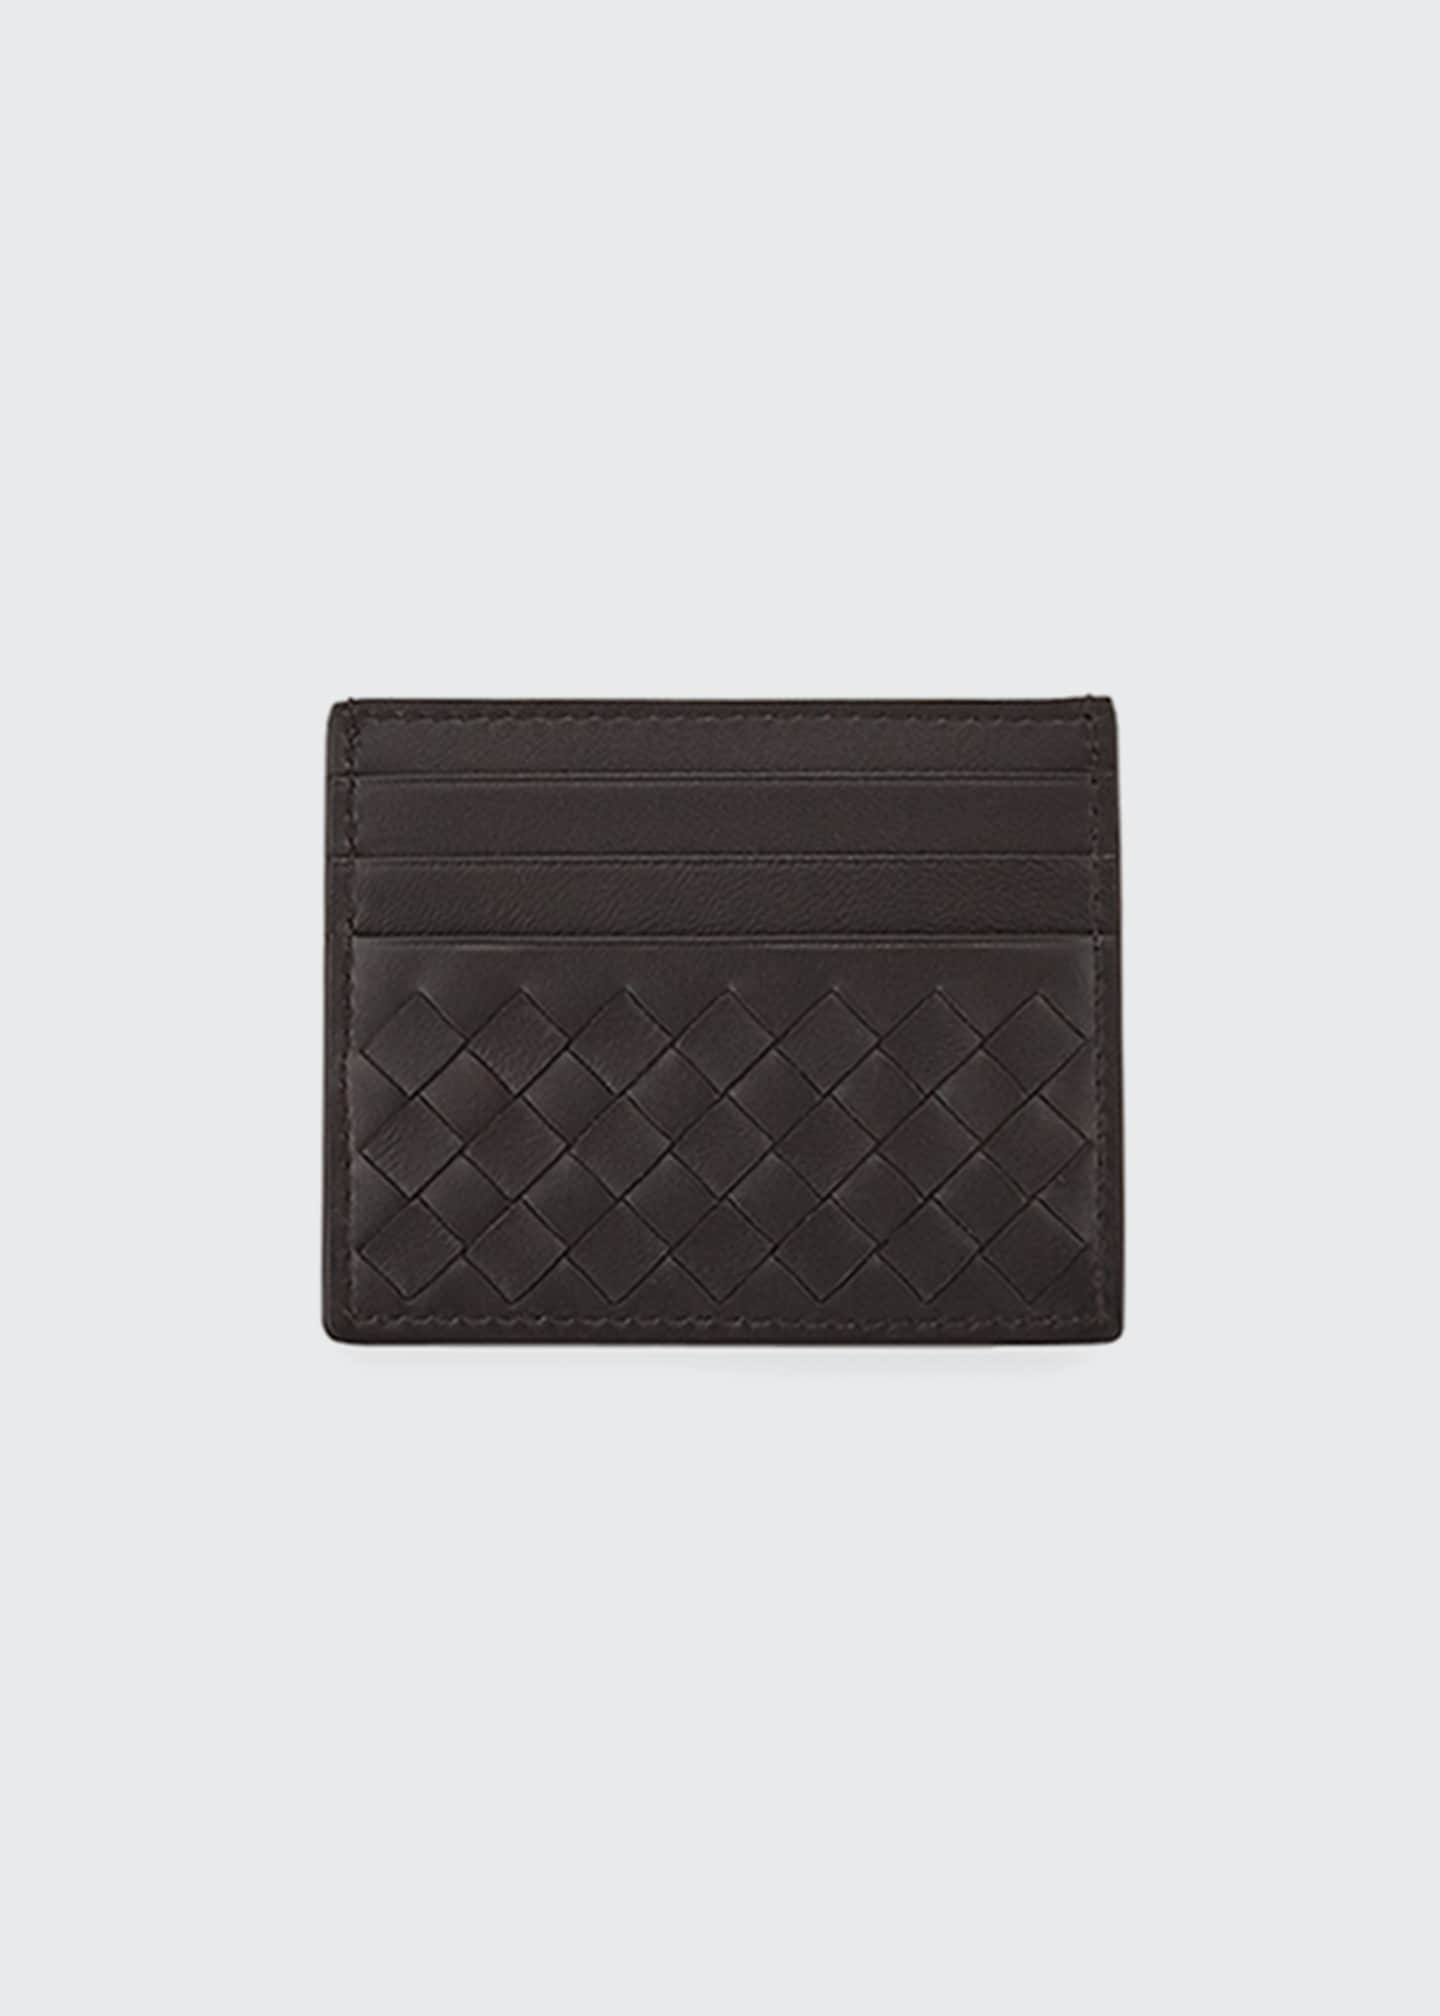 Bottega Veneta Woven Leather Credit Card Case